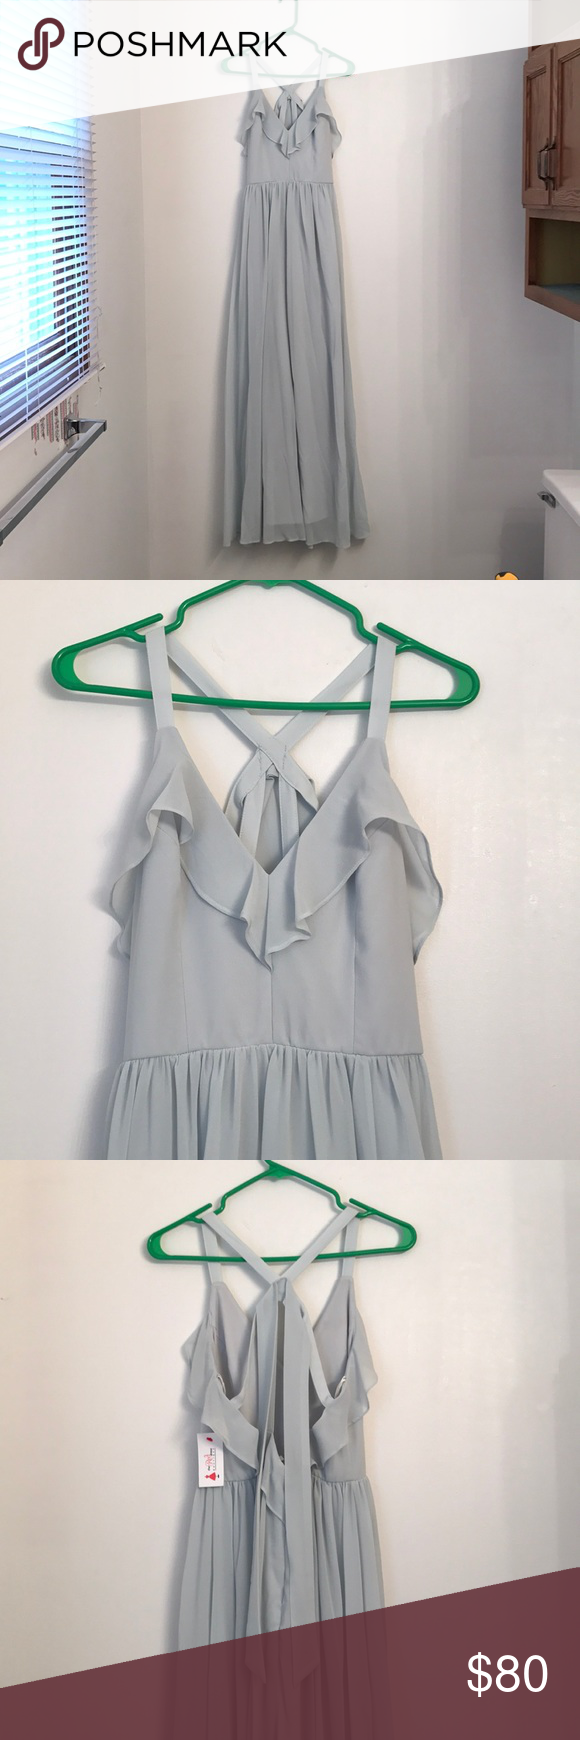 NWT light sage green dress with ruffles LOVE this dress but never got a chance to wear it. Light sage green maxi dress with ruffles and beautiful back detailing! Red Dress Boutique Dresses Maxi #sagegreendress